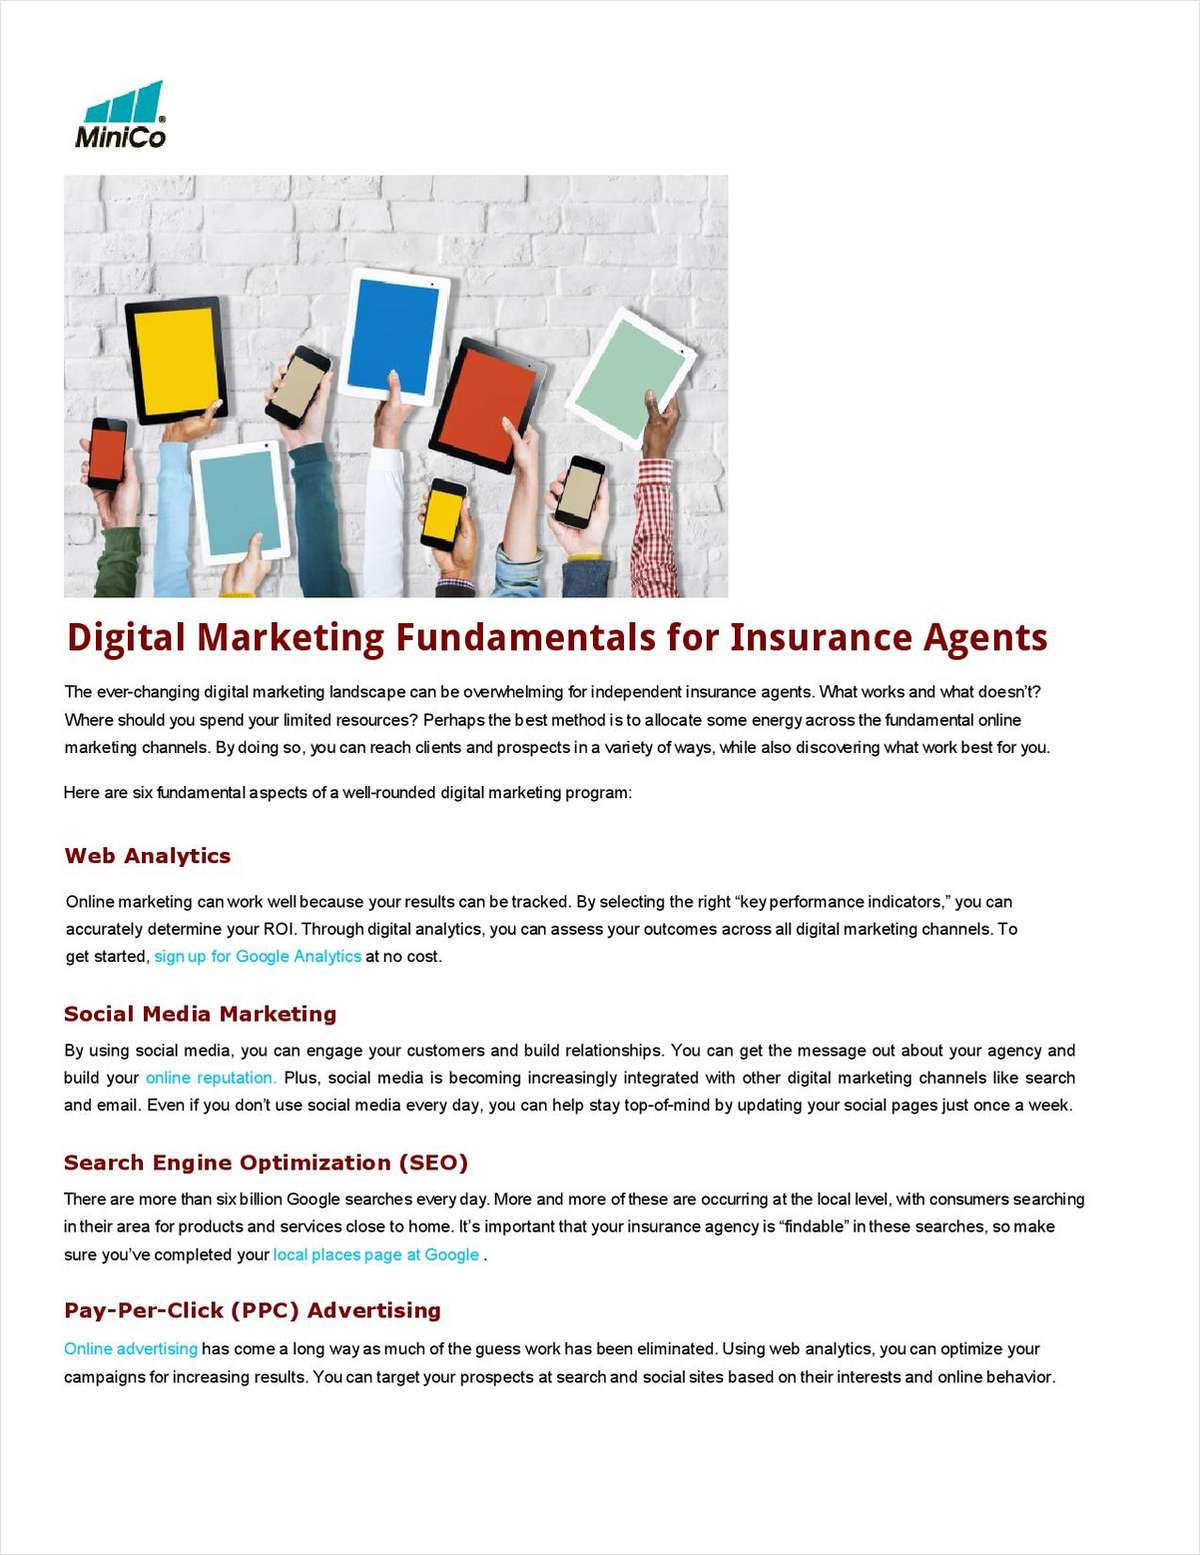 Digital Marketing Fundamentals for Insurance Agents